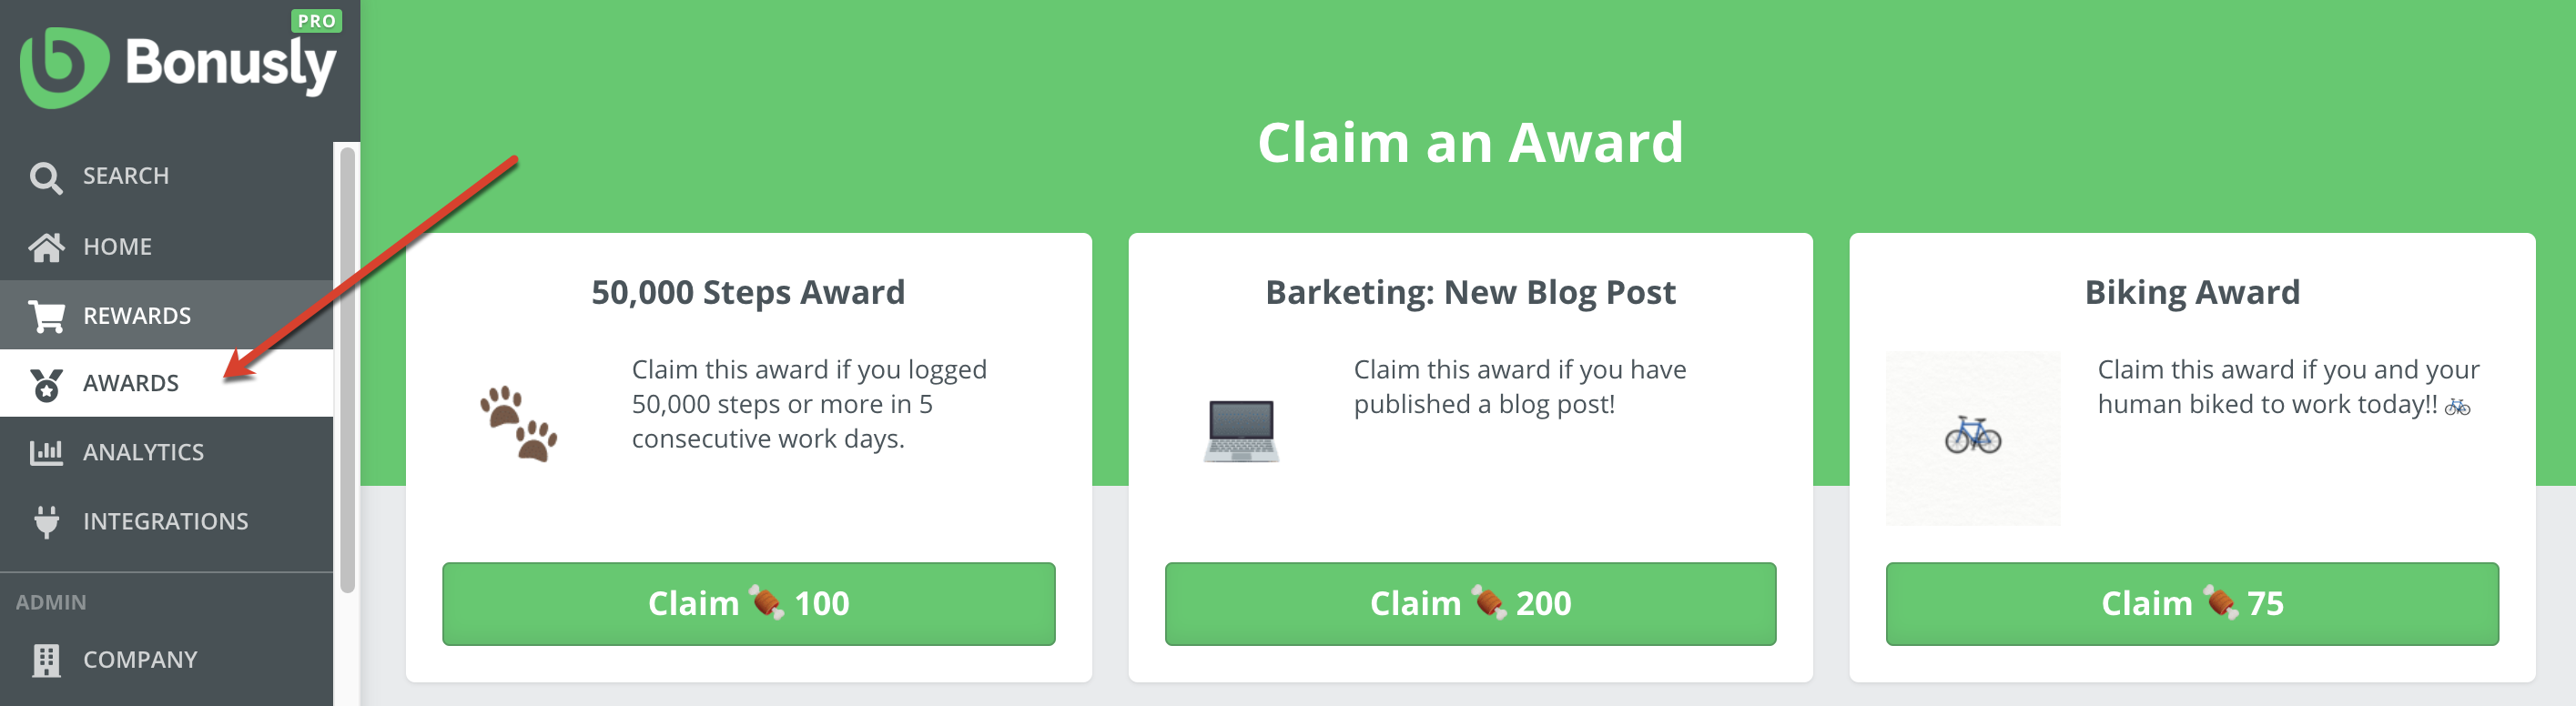 Main awards section showing the new claimable added.